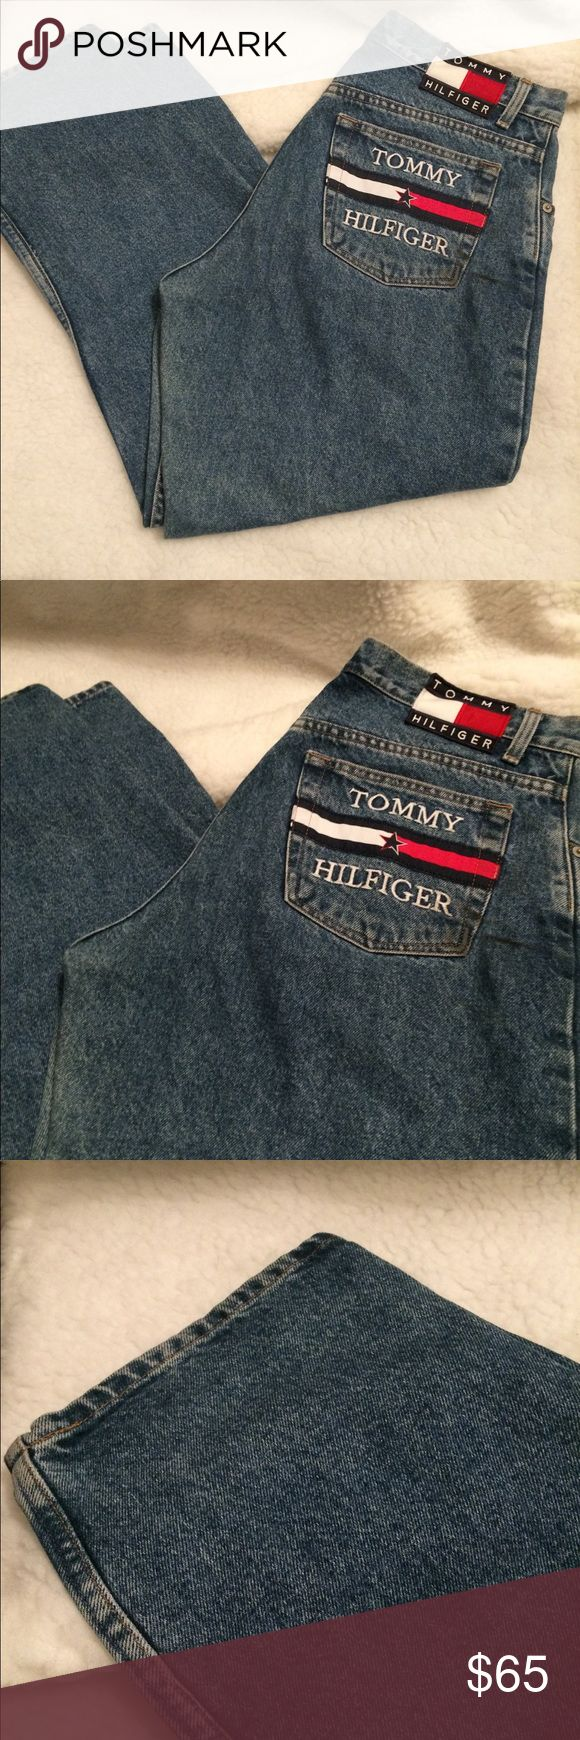 "Vintage 90's Tommy Hilfiger Women jeans size 14 Vintage 90  rare Tommy Hilfiger Women Wash Denim Blue Jeans size 14 Classic Tommy flag emblem present on right back pocket and on the back of the waist band. Button and zipper fastening. These jeans appear to be a straight leg fit - please see measurements below. Women's Size 14 100% Cotton. Approximate Measurements: Waist 36"" Inseam 25"" Outseam 34.5"" Front Rise 11"" Thigh 11.5"" Tommy Hilfiger Jeans Boot Cut"